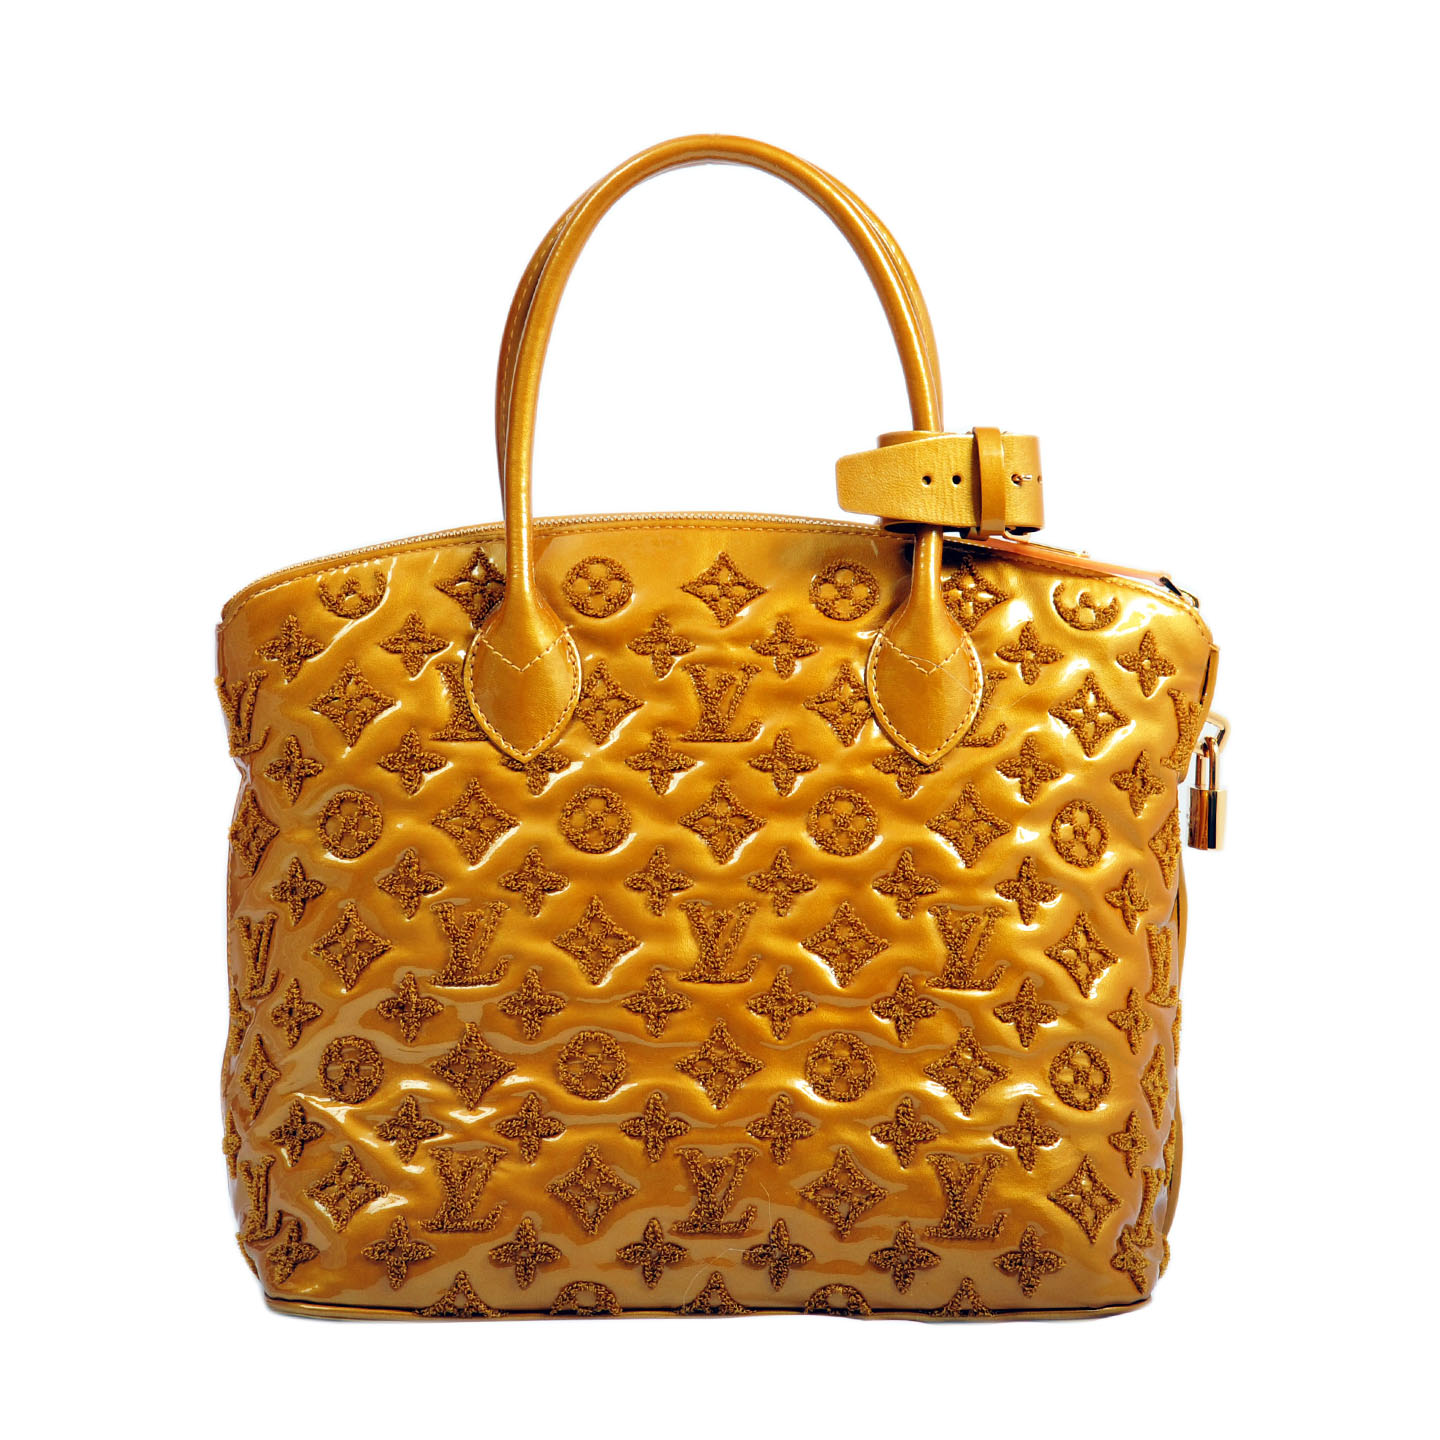 0edaa4a499d52 Louis Vuitton Patent Lambskin Fascination Lockit Bag - LabelCentric